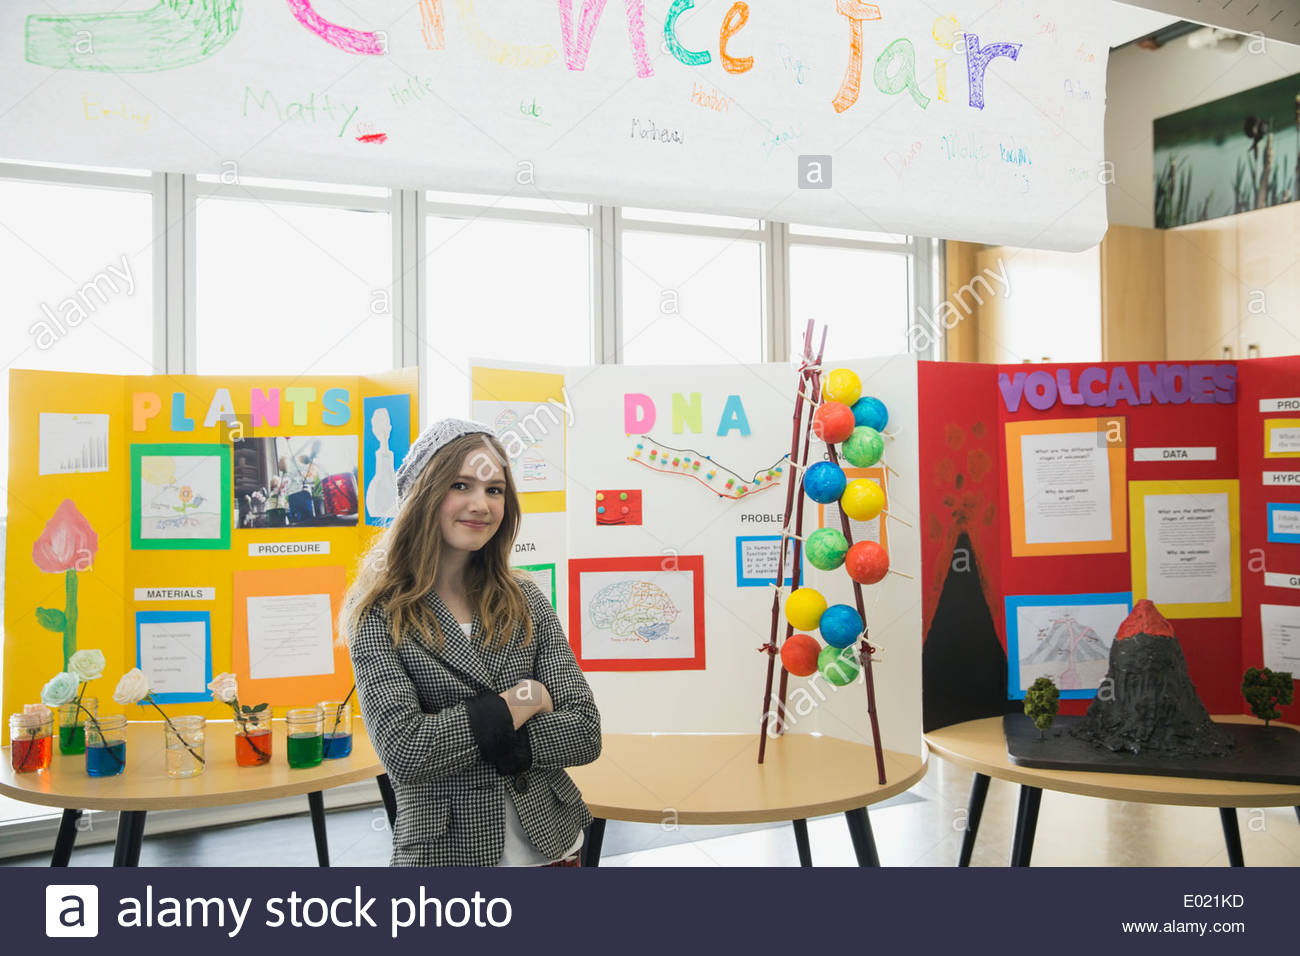 Portrait of school girl at science fair Stock Photo